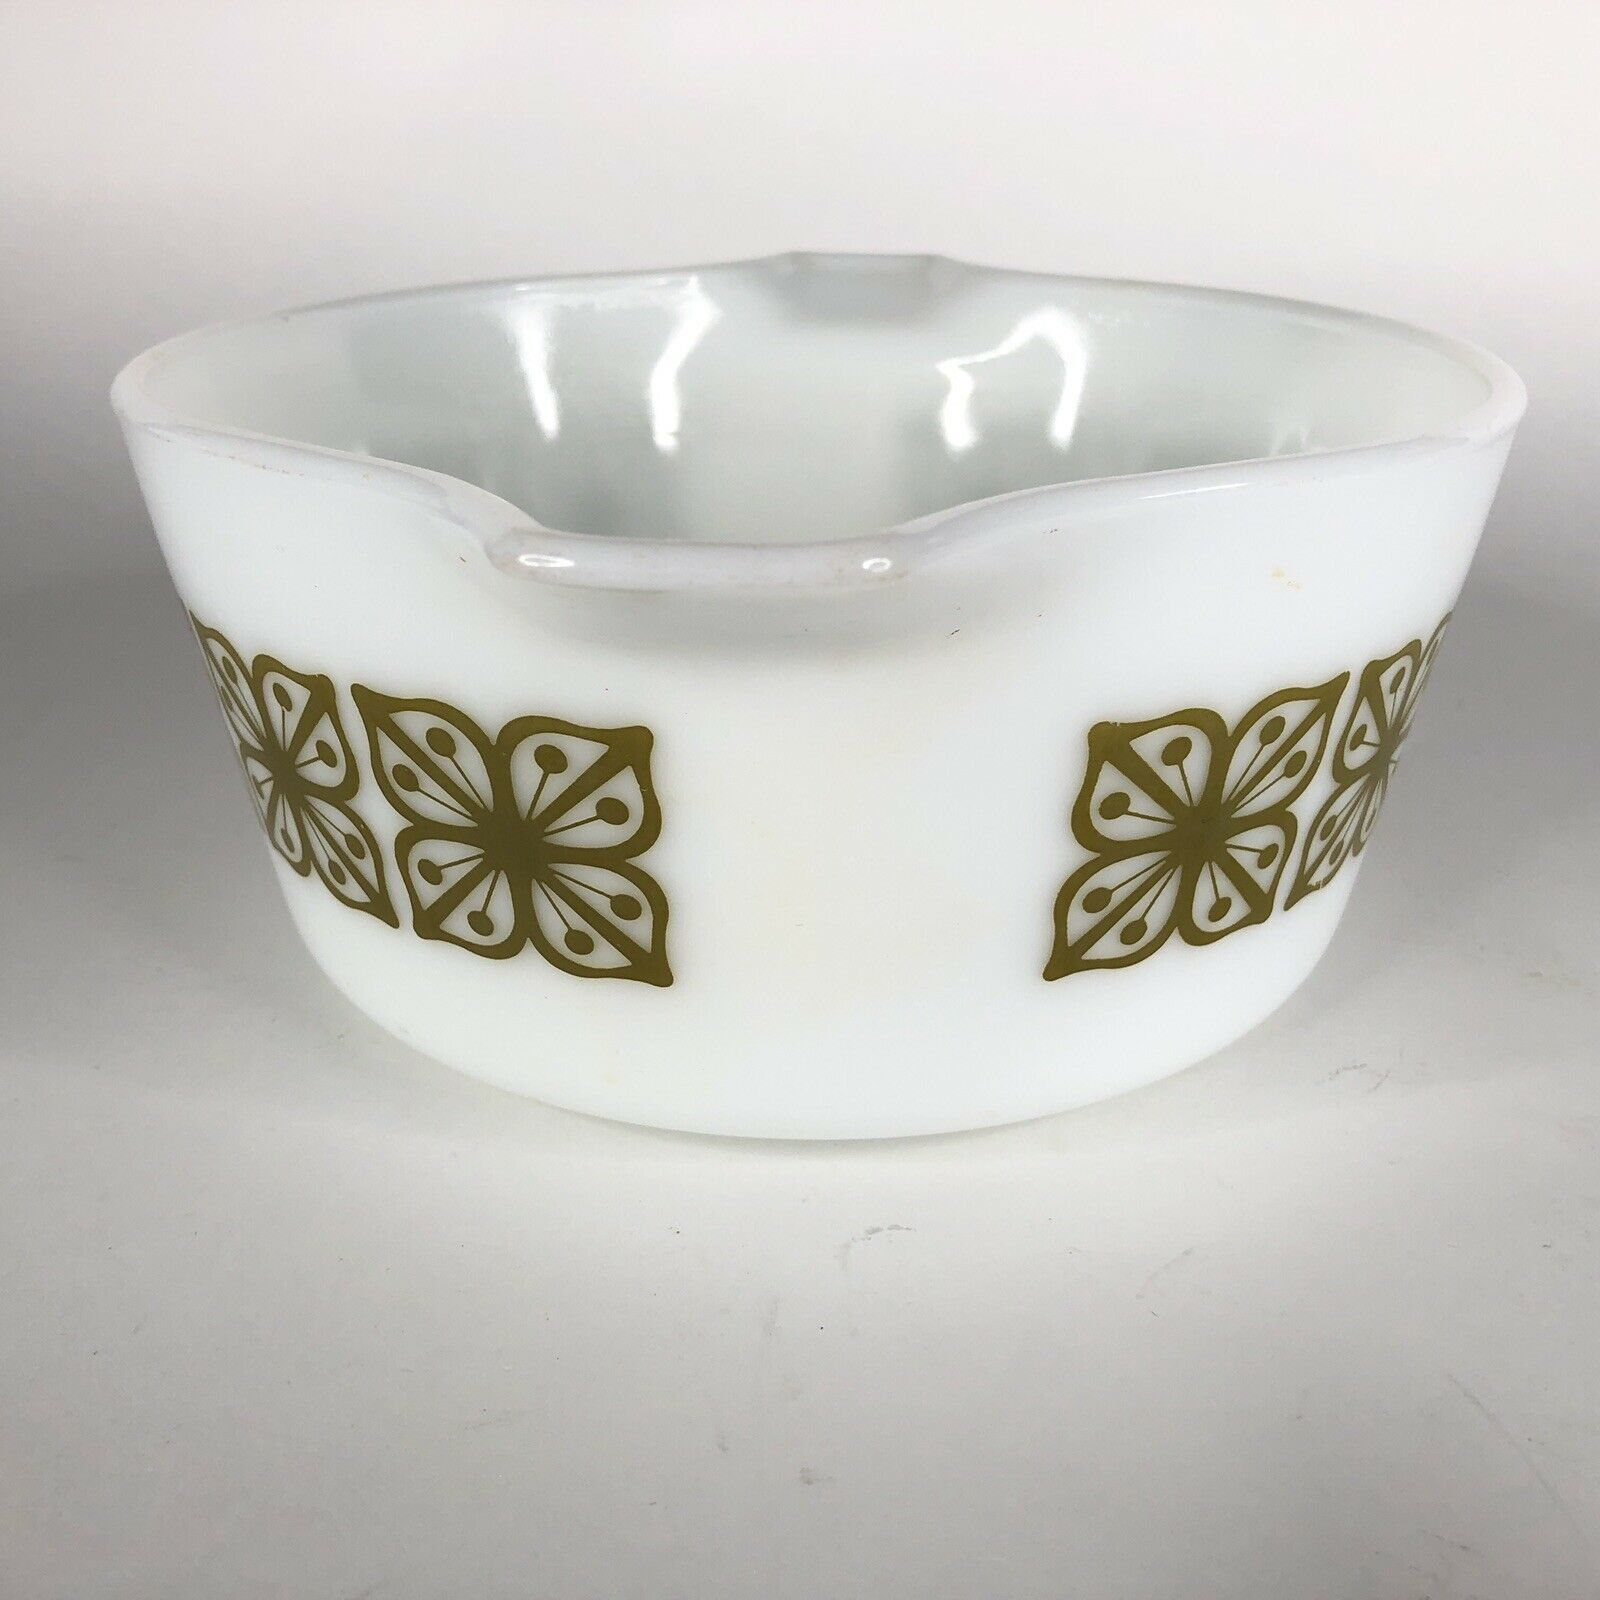 Pyrex Verde Square Green Flower Casserole Dish 474 B Covered Baking 1.5 Quart QT image 4